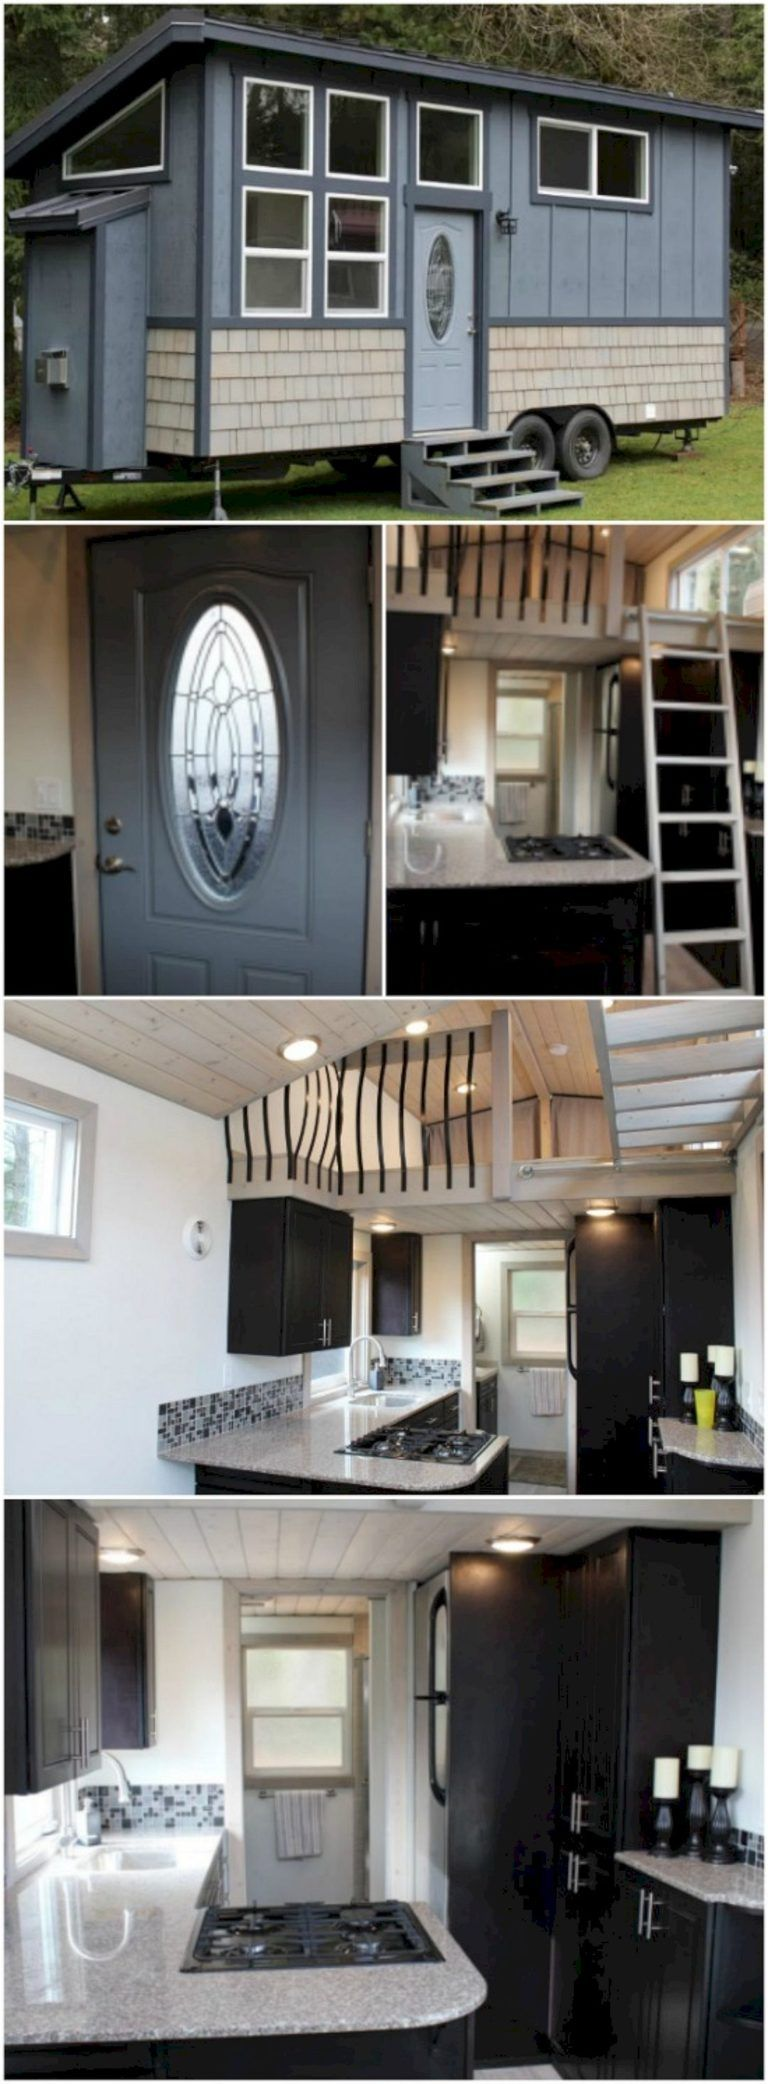 Stunning Tiny House on Wheels that You Must Have Right Now (15 Ideas)